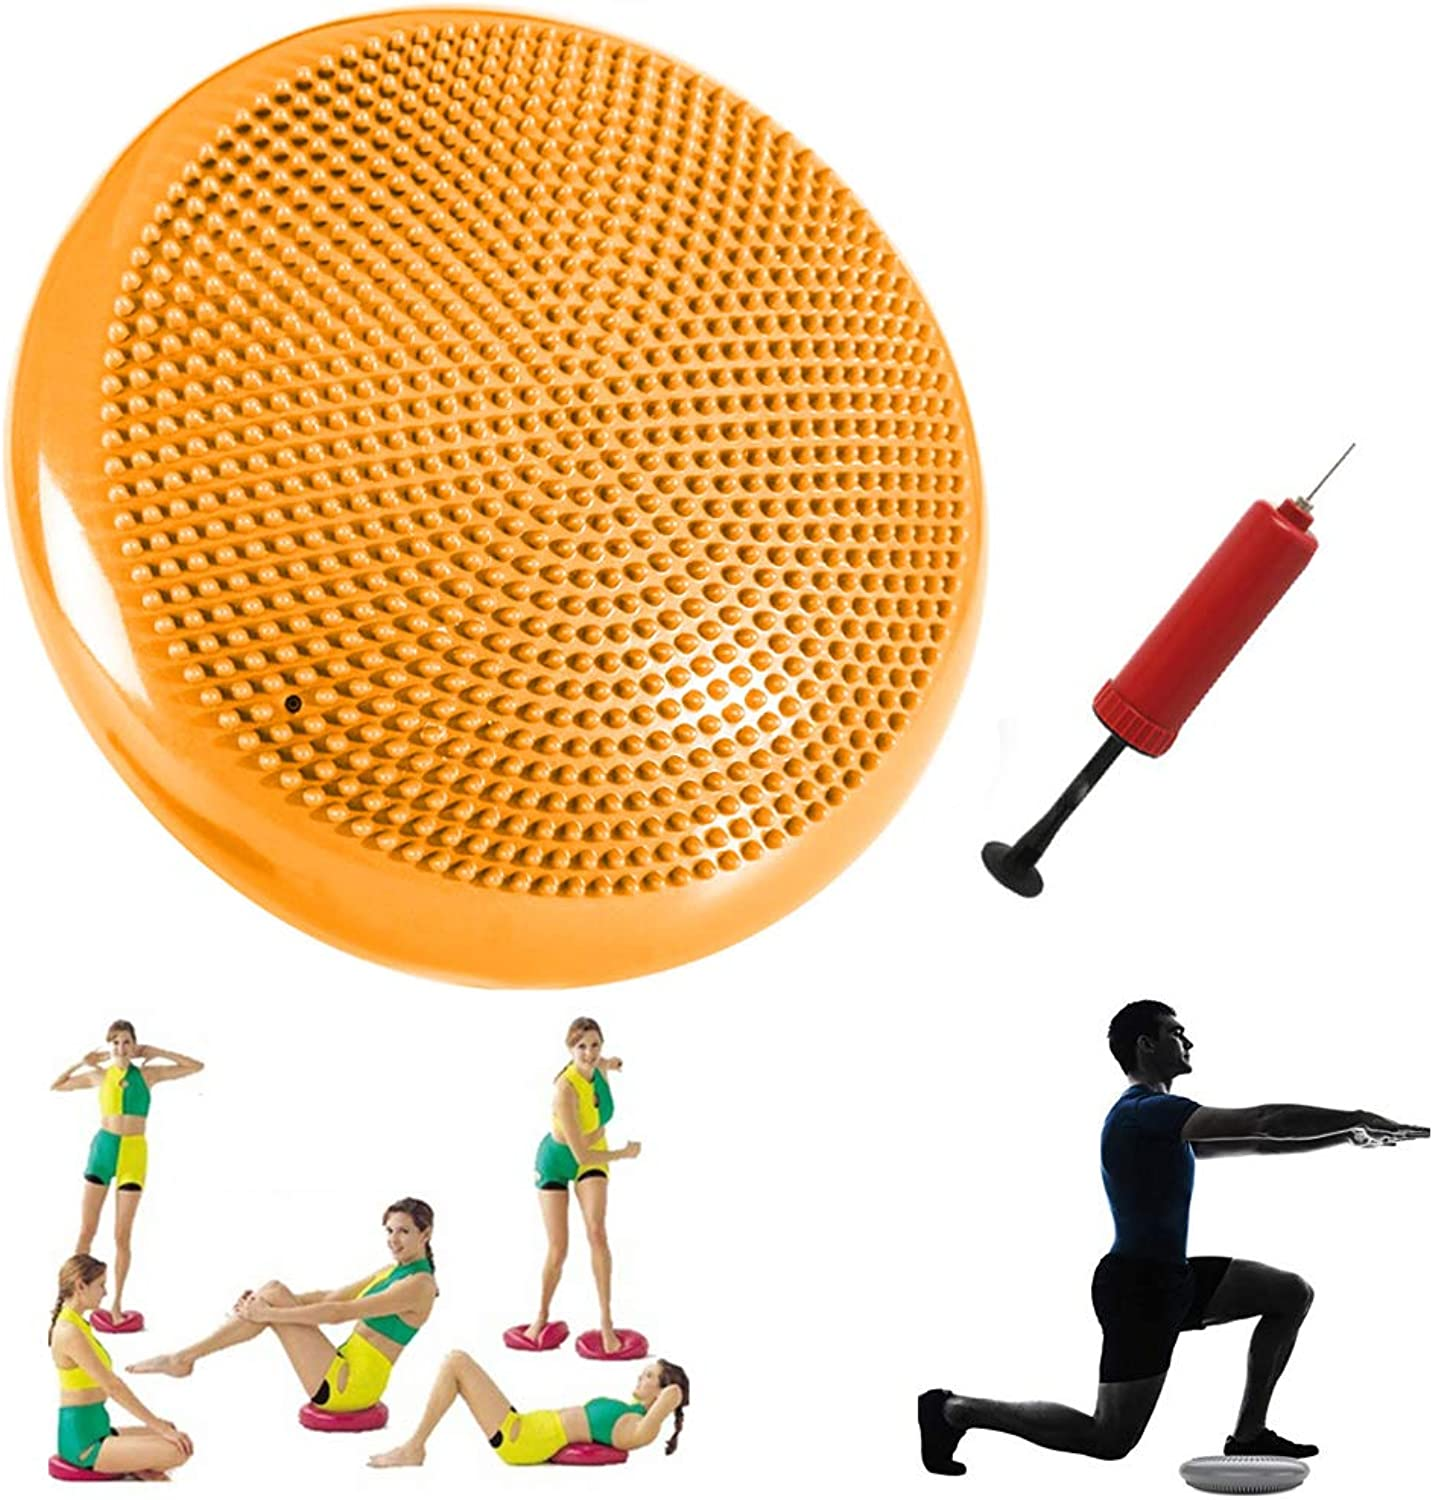 Price Xes Exercise Stability Core Balance Disc Trainer, Wobble Cushion w Air Pump Wiggle Chair Sitting Disk Inflatable Exercise Stability Board, Yoga Core Training Flexible Sitting Workout Fitness